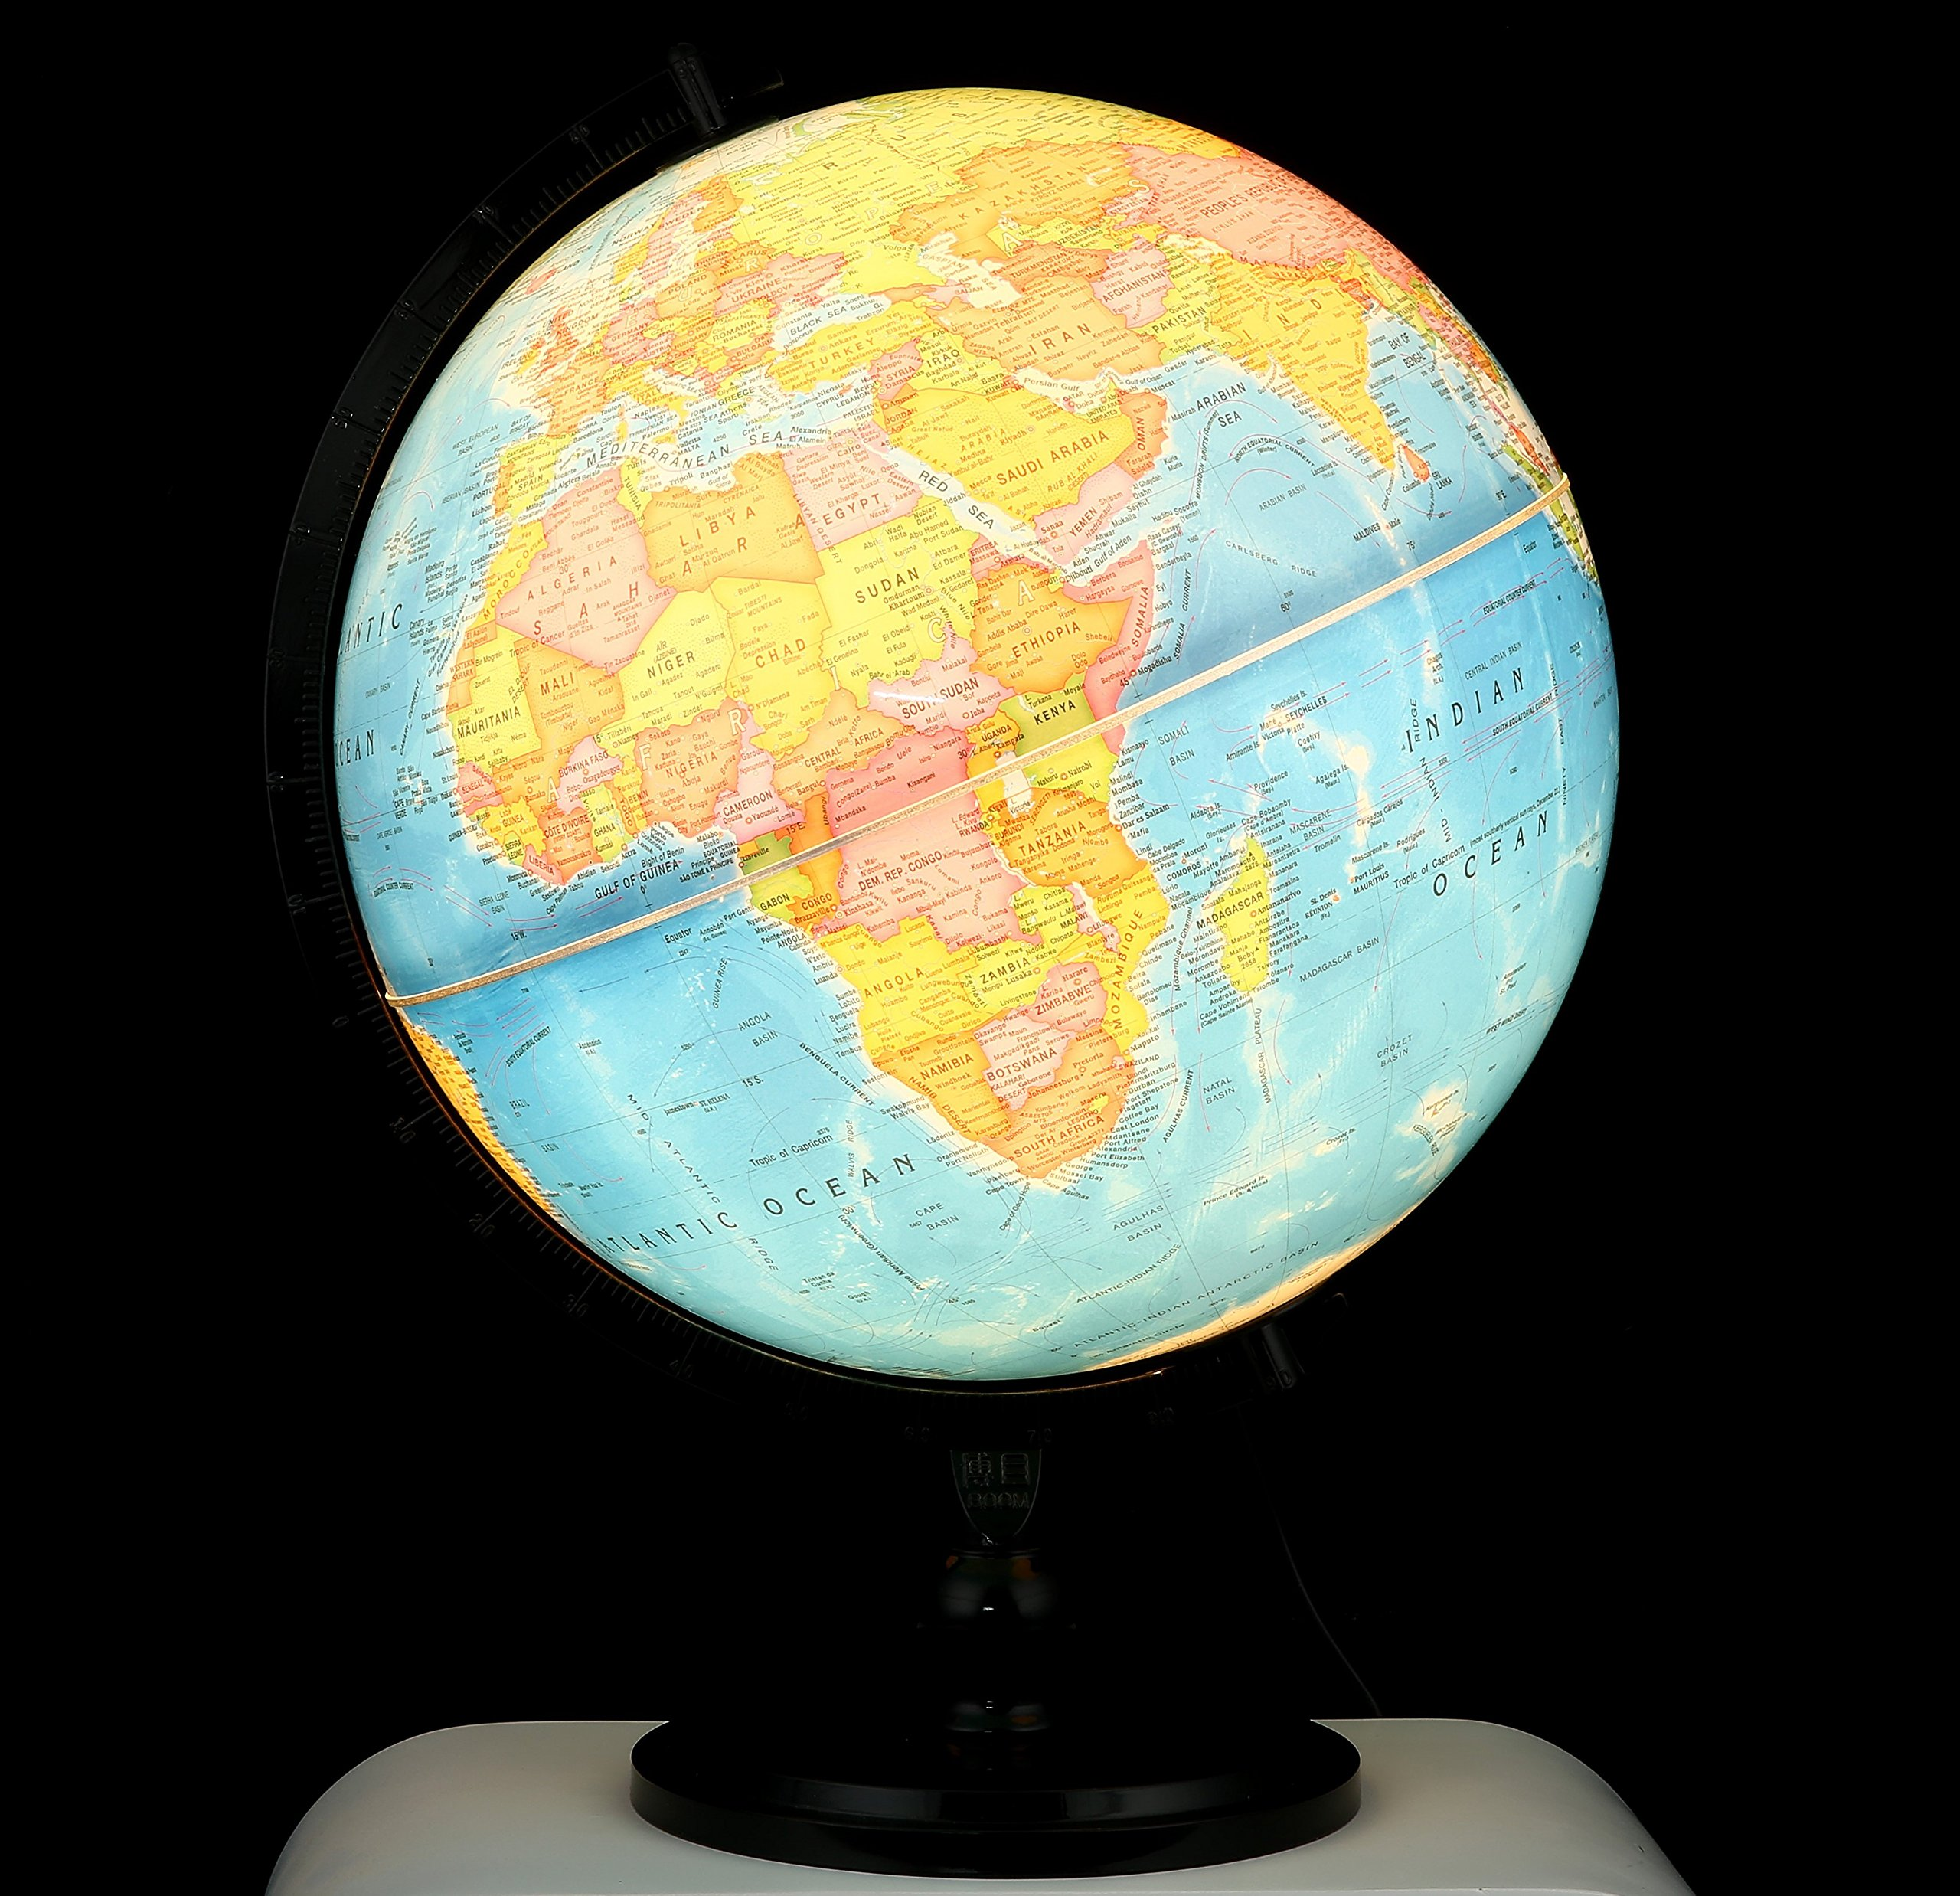 Illuminated Blue Ocean Globe (12.5''/32 cm diameter)-Educational Globe for Kids & Teachers, Over 5,000 Place Names, Energy-Saving LED, Weighted Base by BOOM Globes (Image #2)